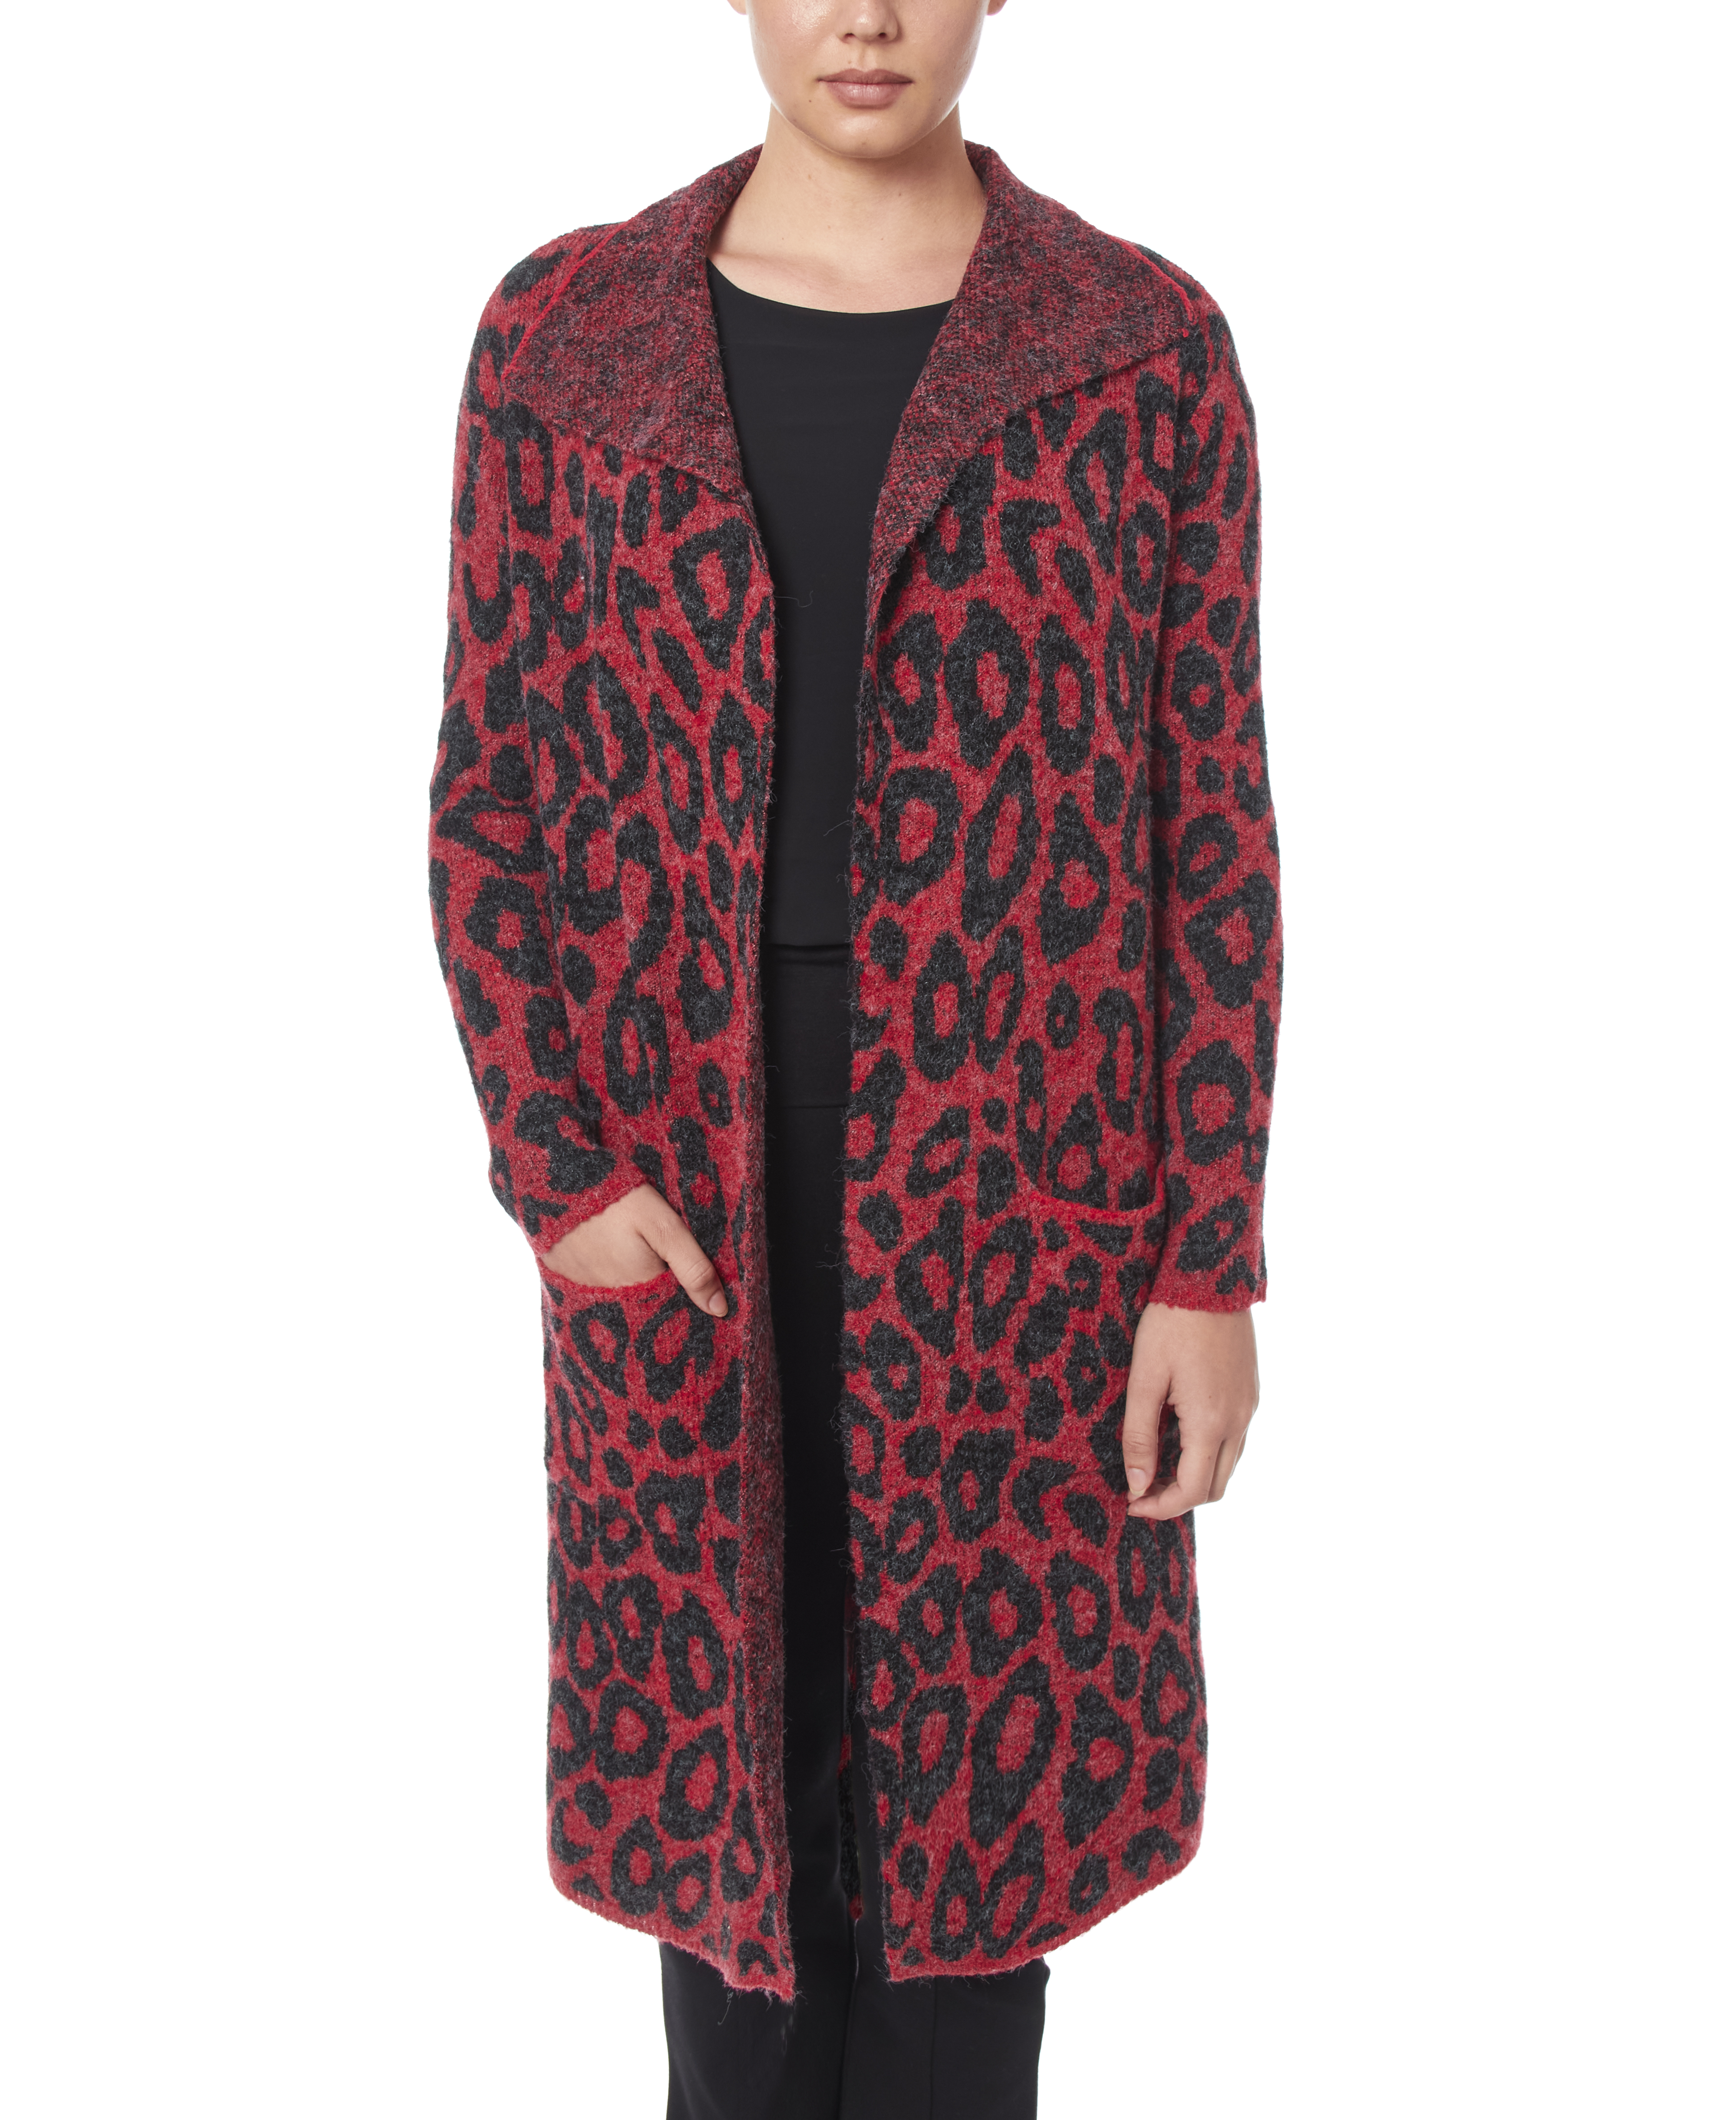 Drape Collar Coatigan in Modern Leopard